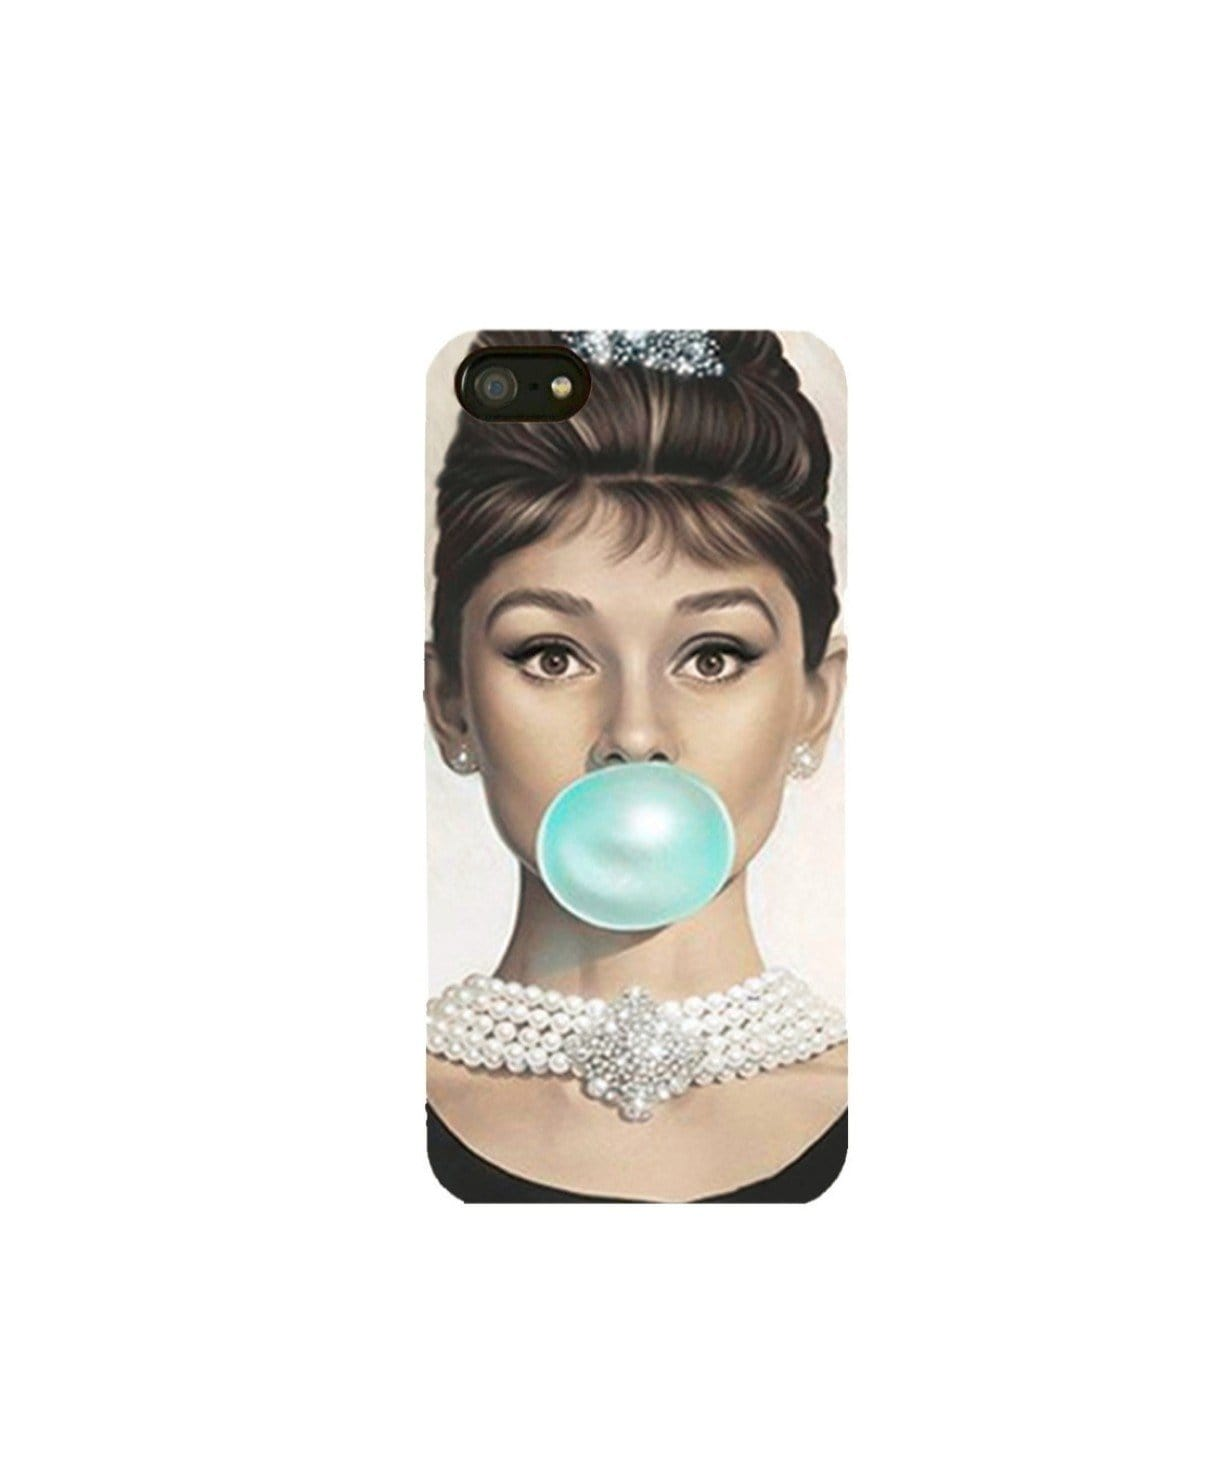 Audrey IPhone Cover (Personalisation Available) - Uptownie